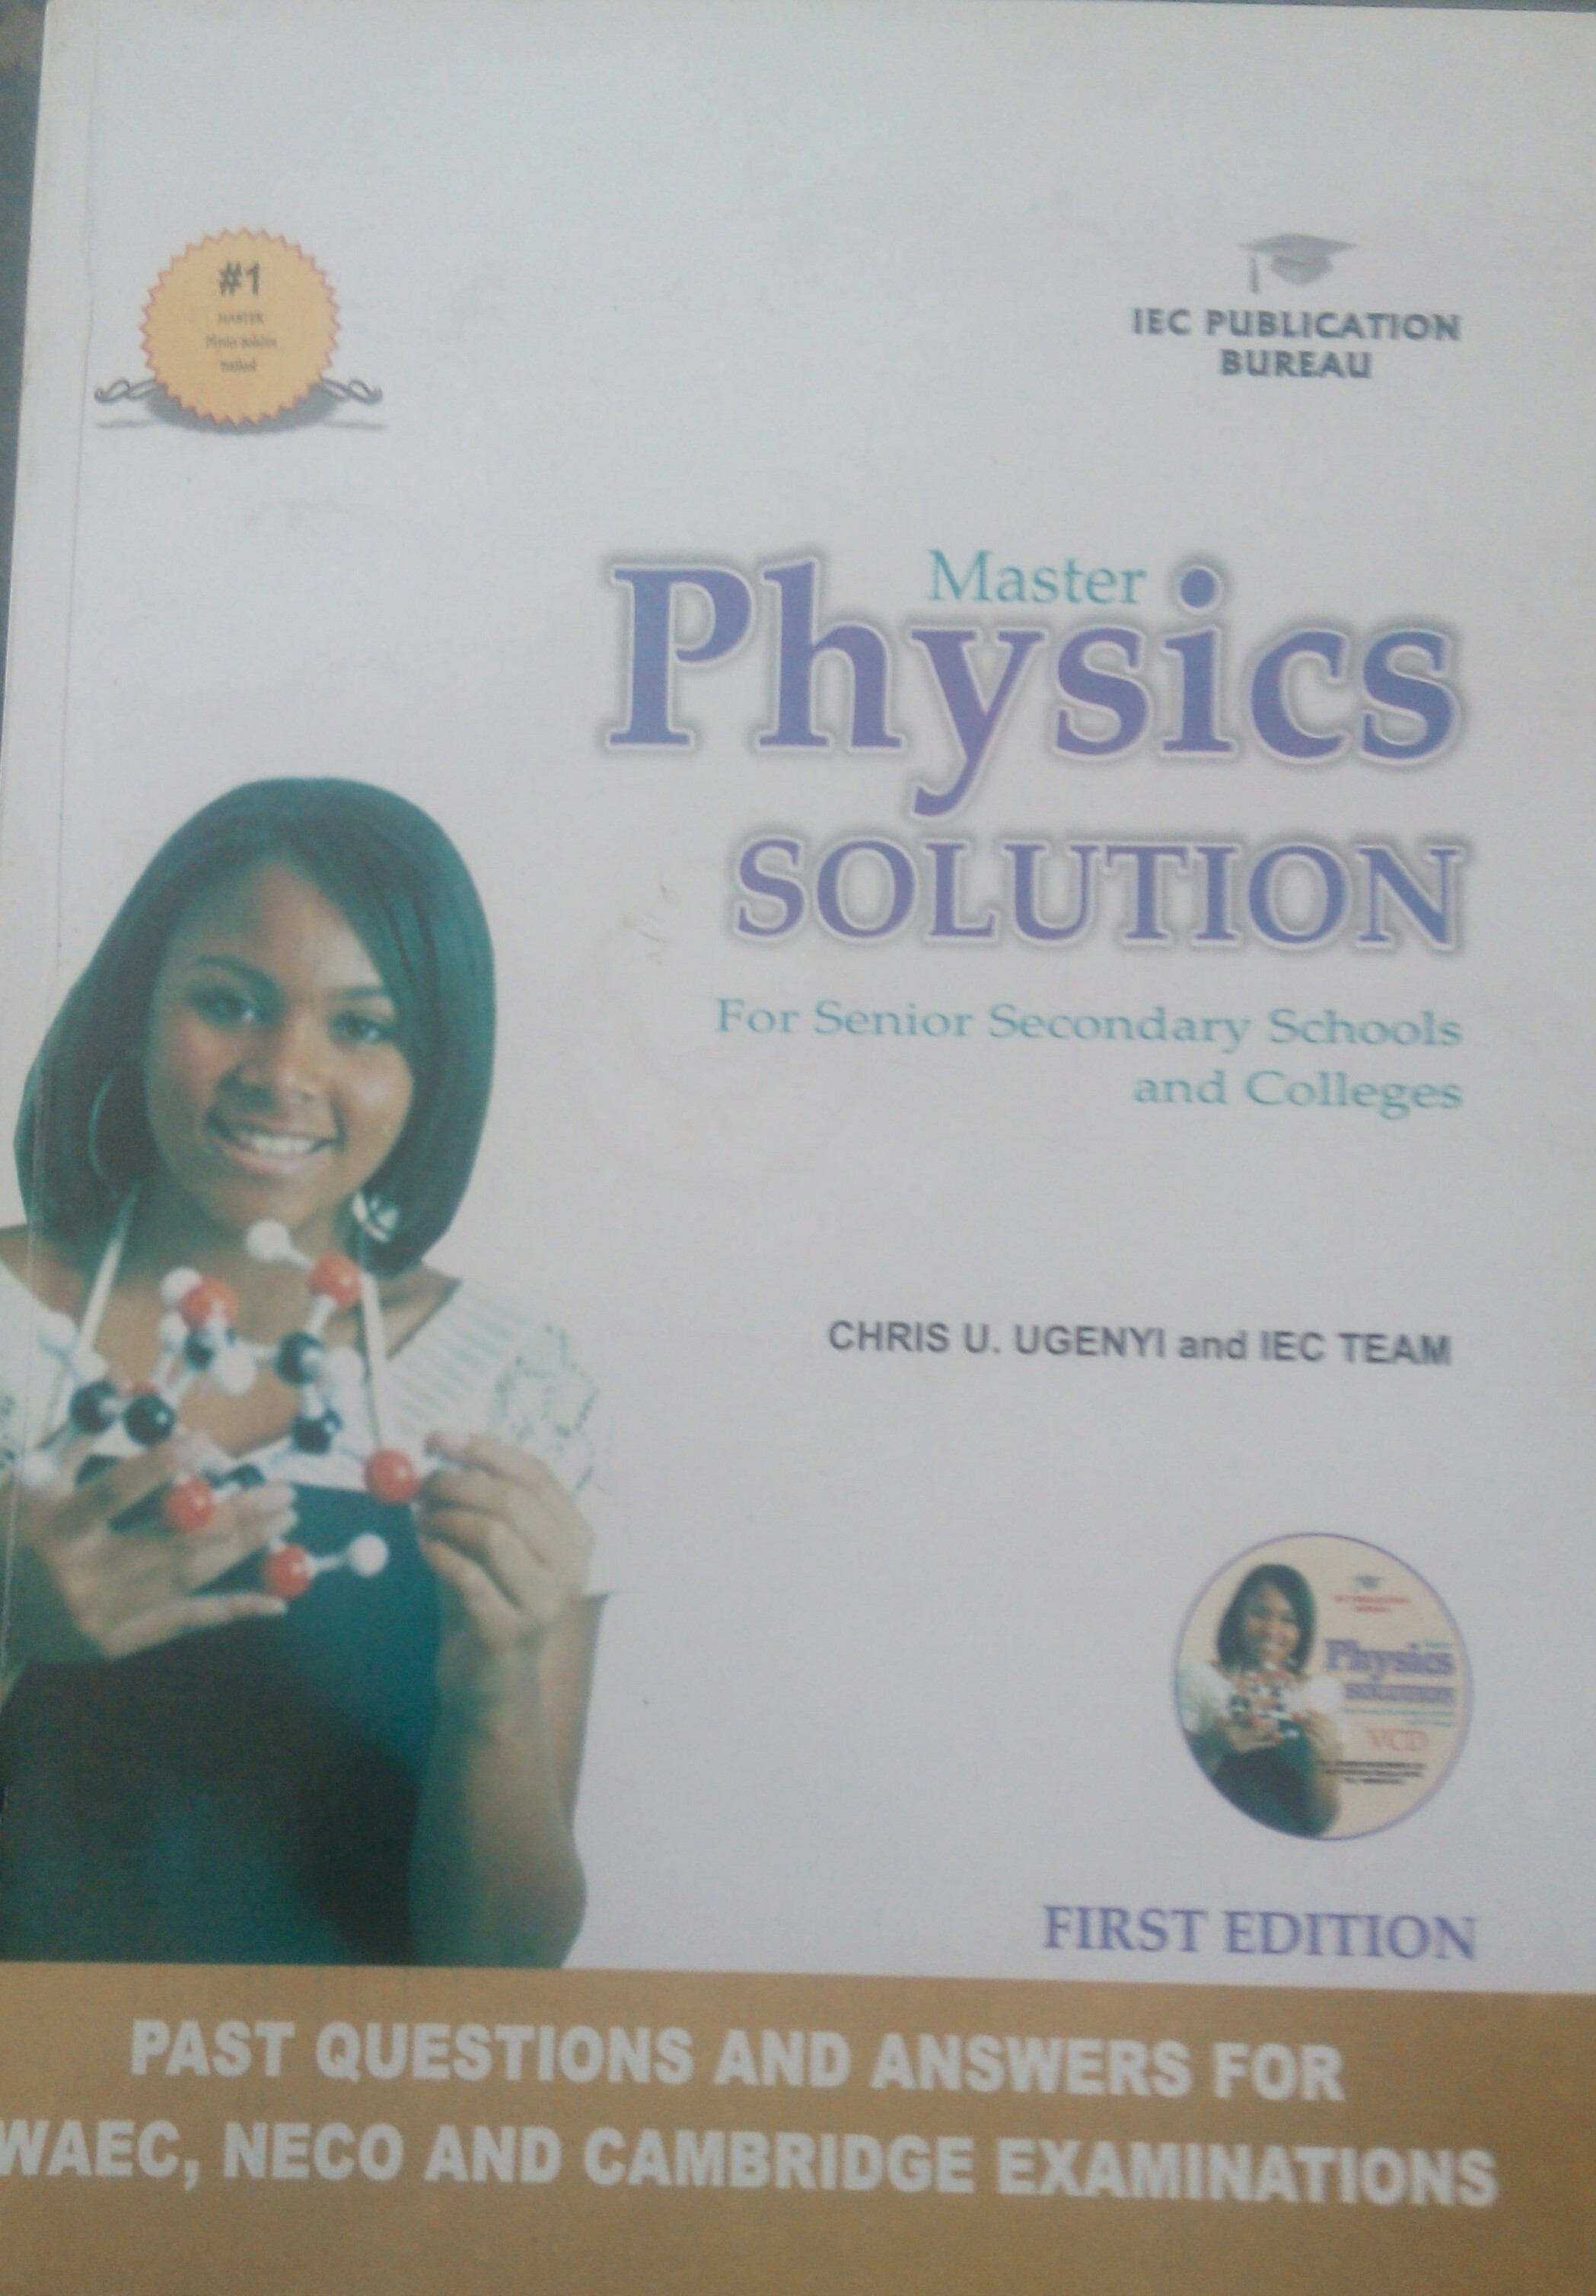 Master Physics Solution for Senior Secondary Schools and Colleges